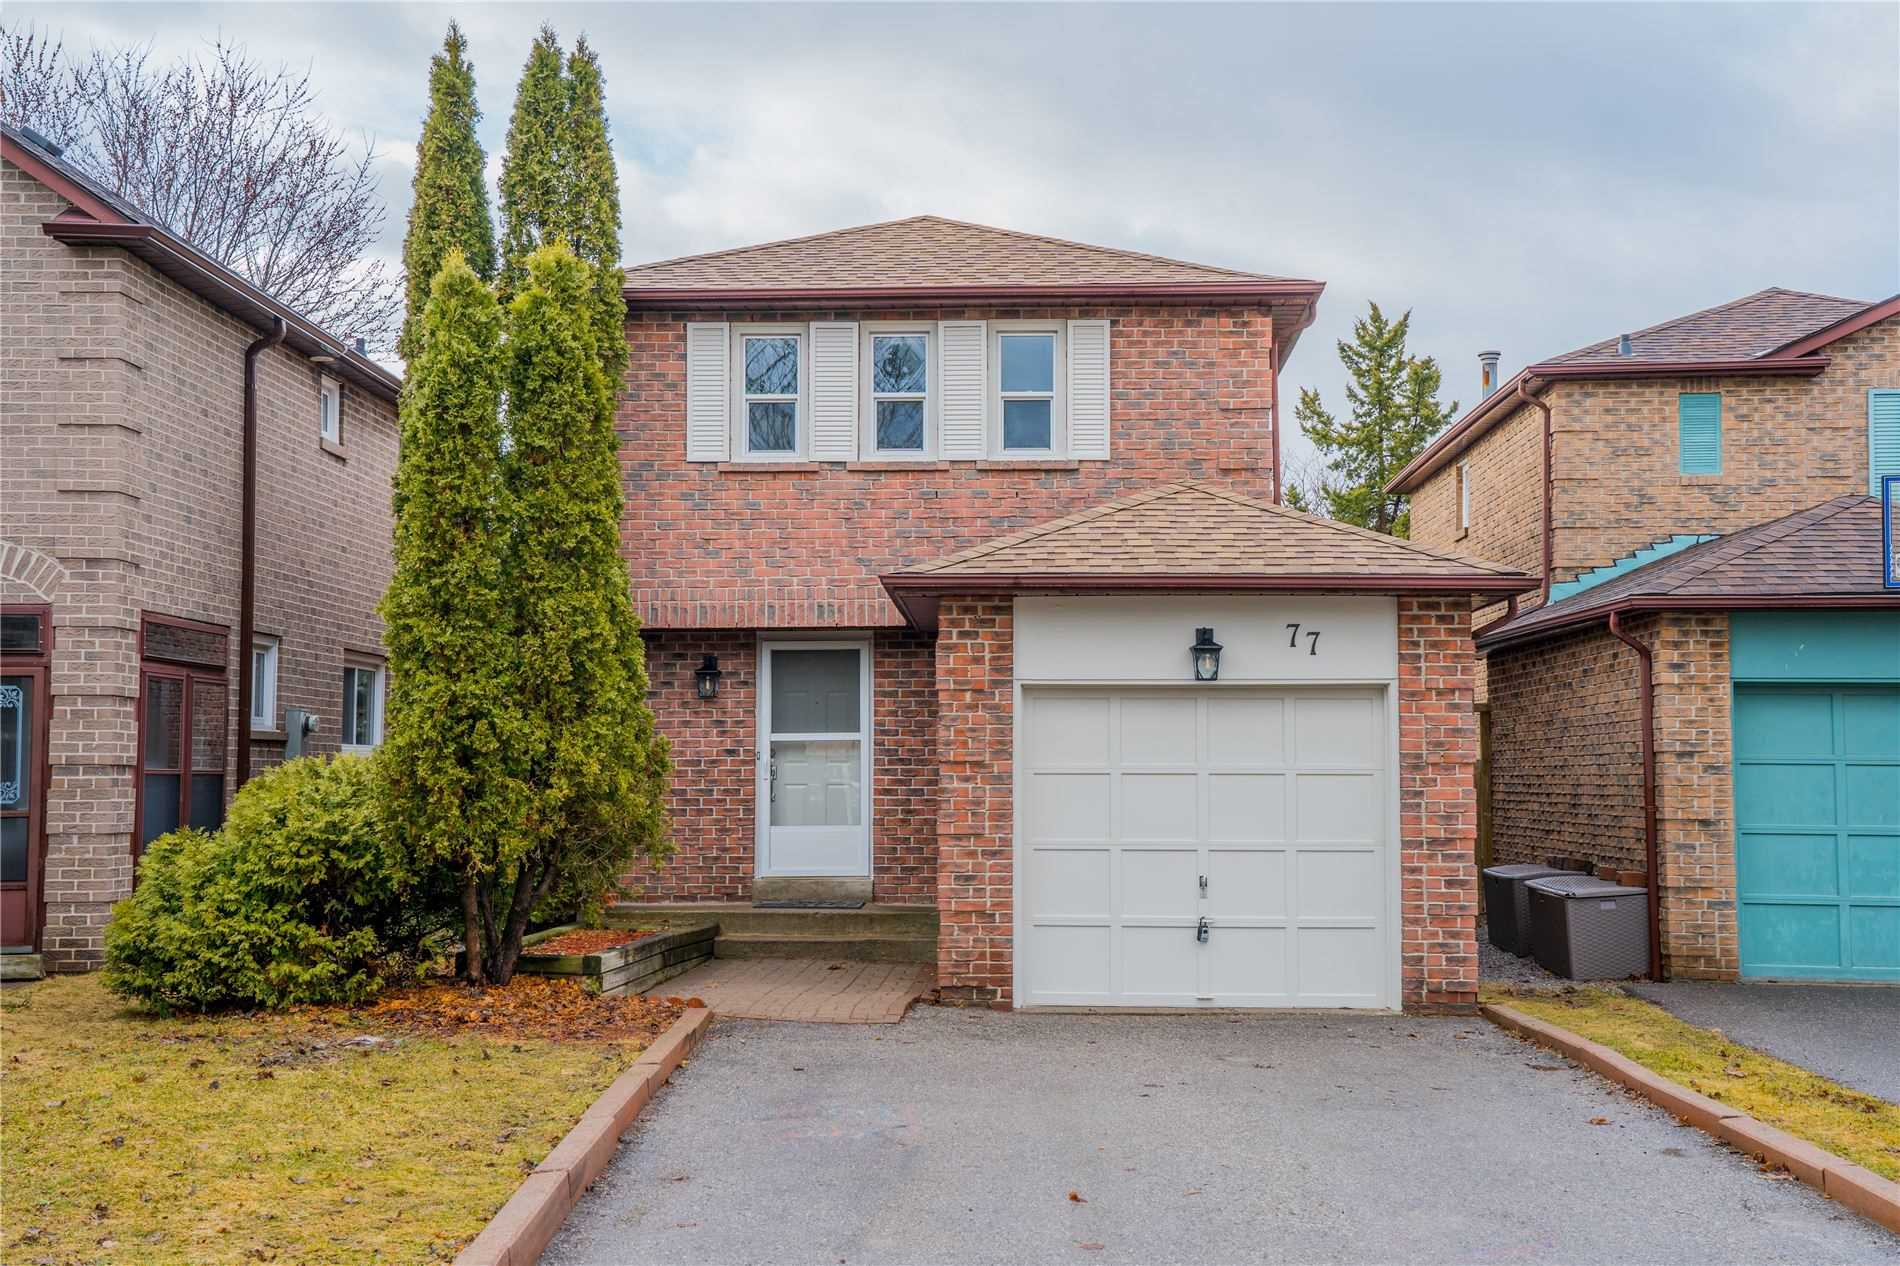 pictures of house for sale MLS: E4729880 located at 77 Chatfield Dr, Ajax L1T2J4